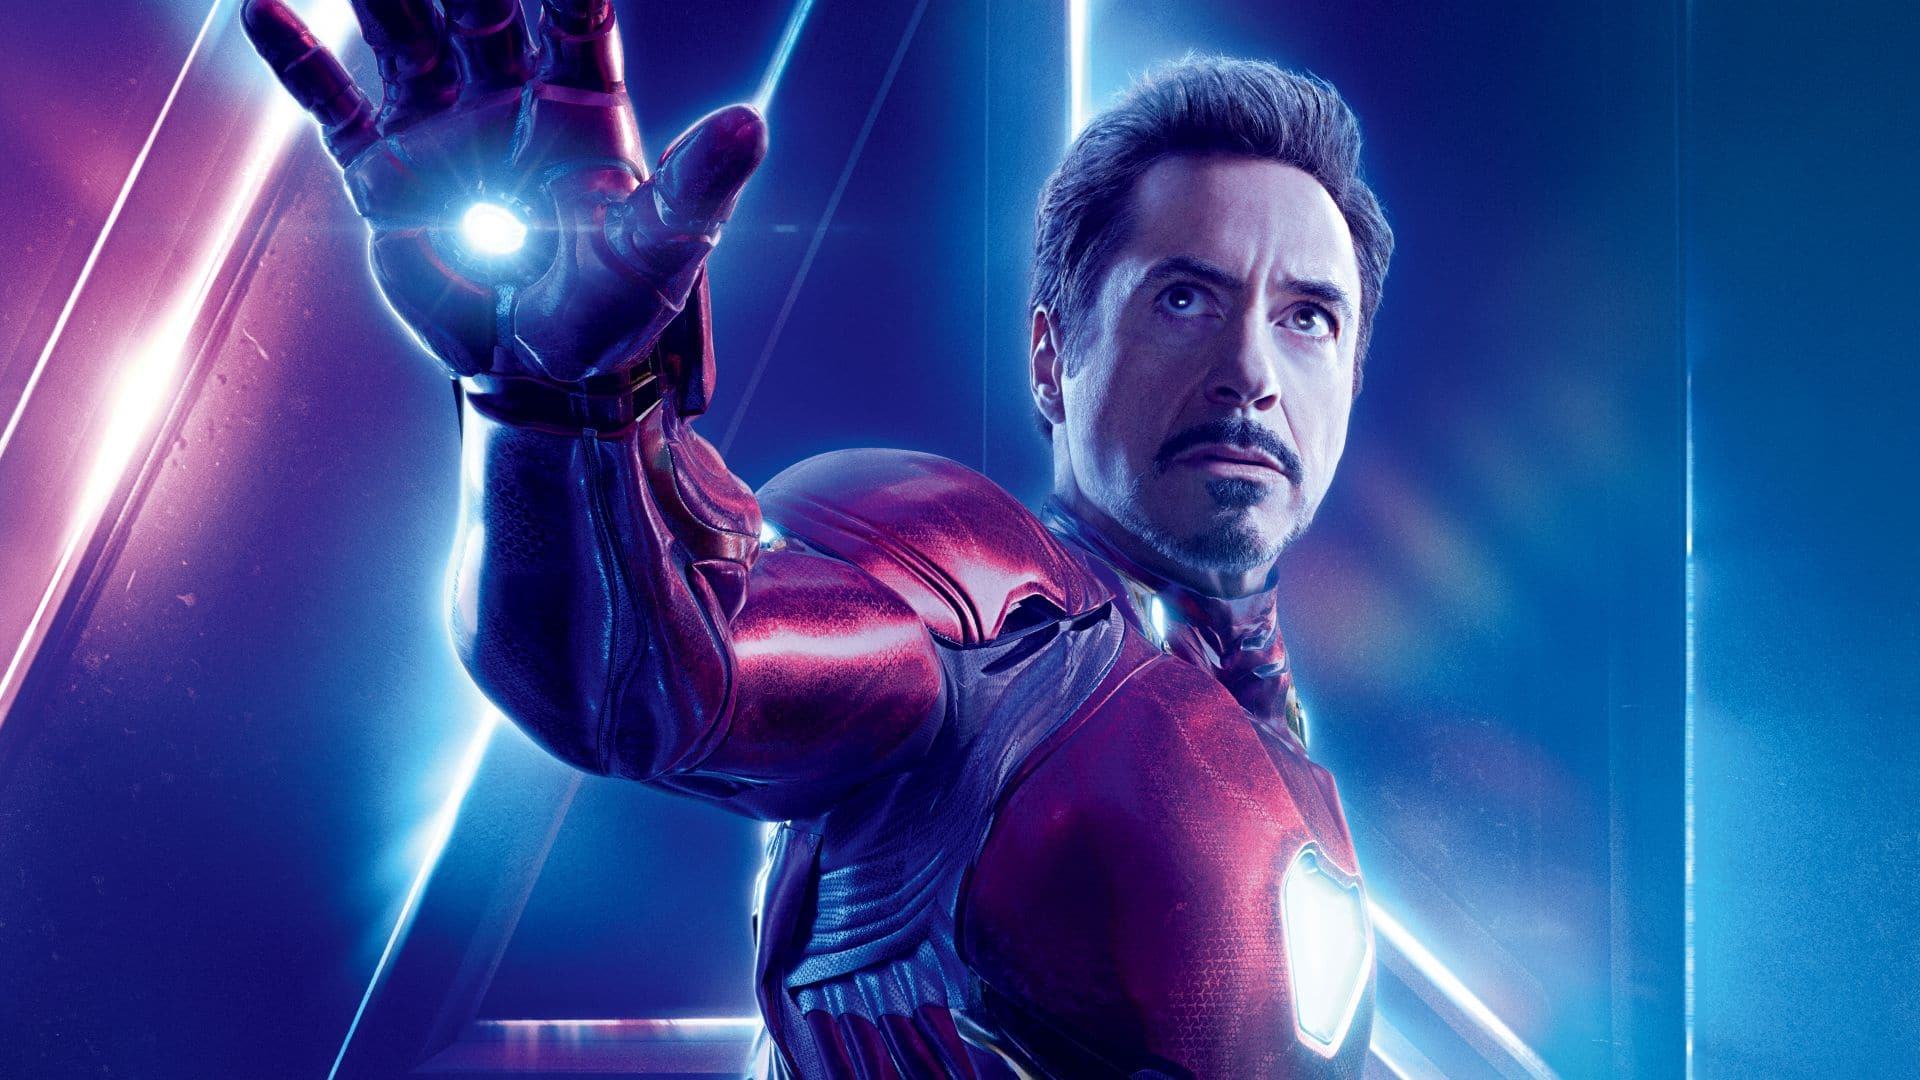 """ It&squot;d Either Be Great Or The Biggest Dumpster Fire Ever"": Kevin Feige On Casting Robert Downey jr As Iron Man"